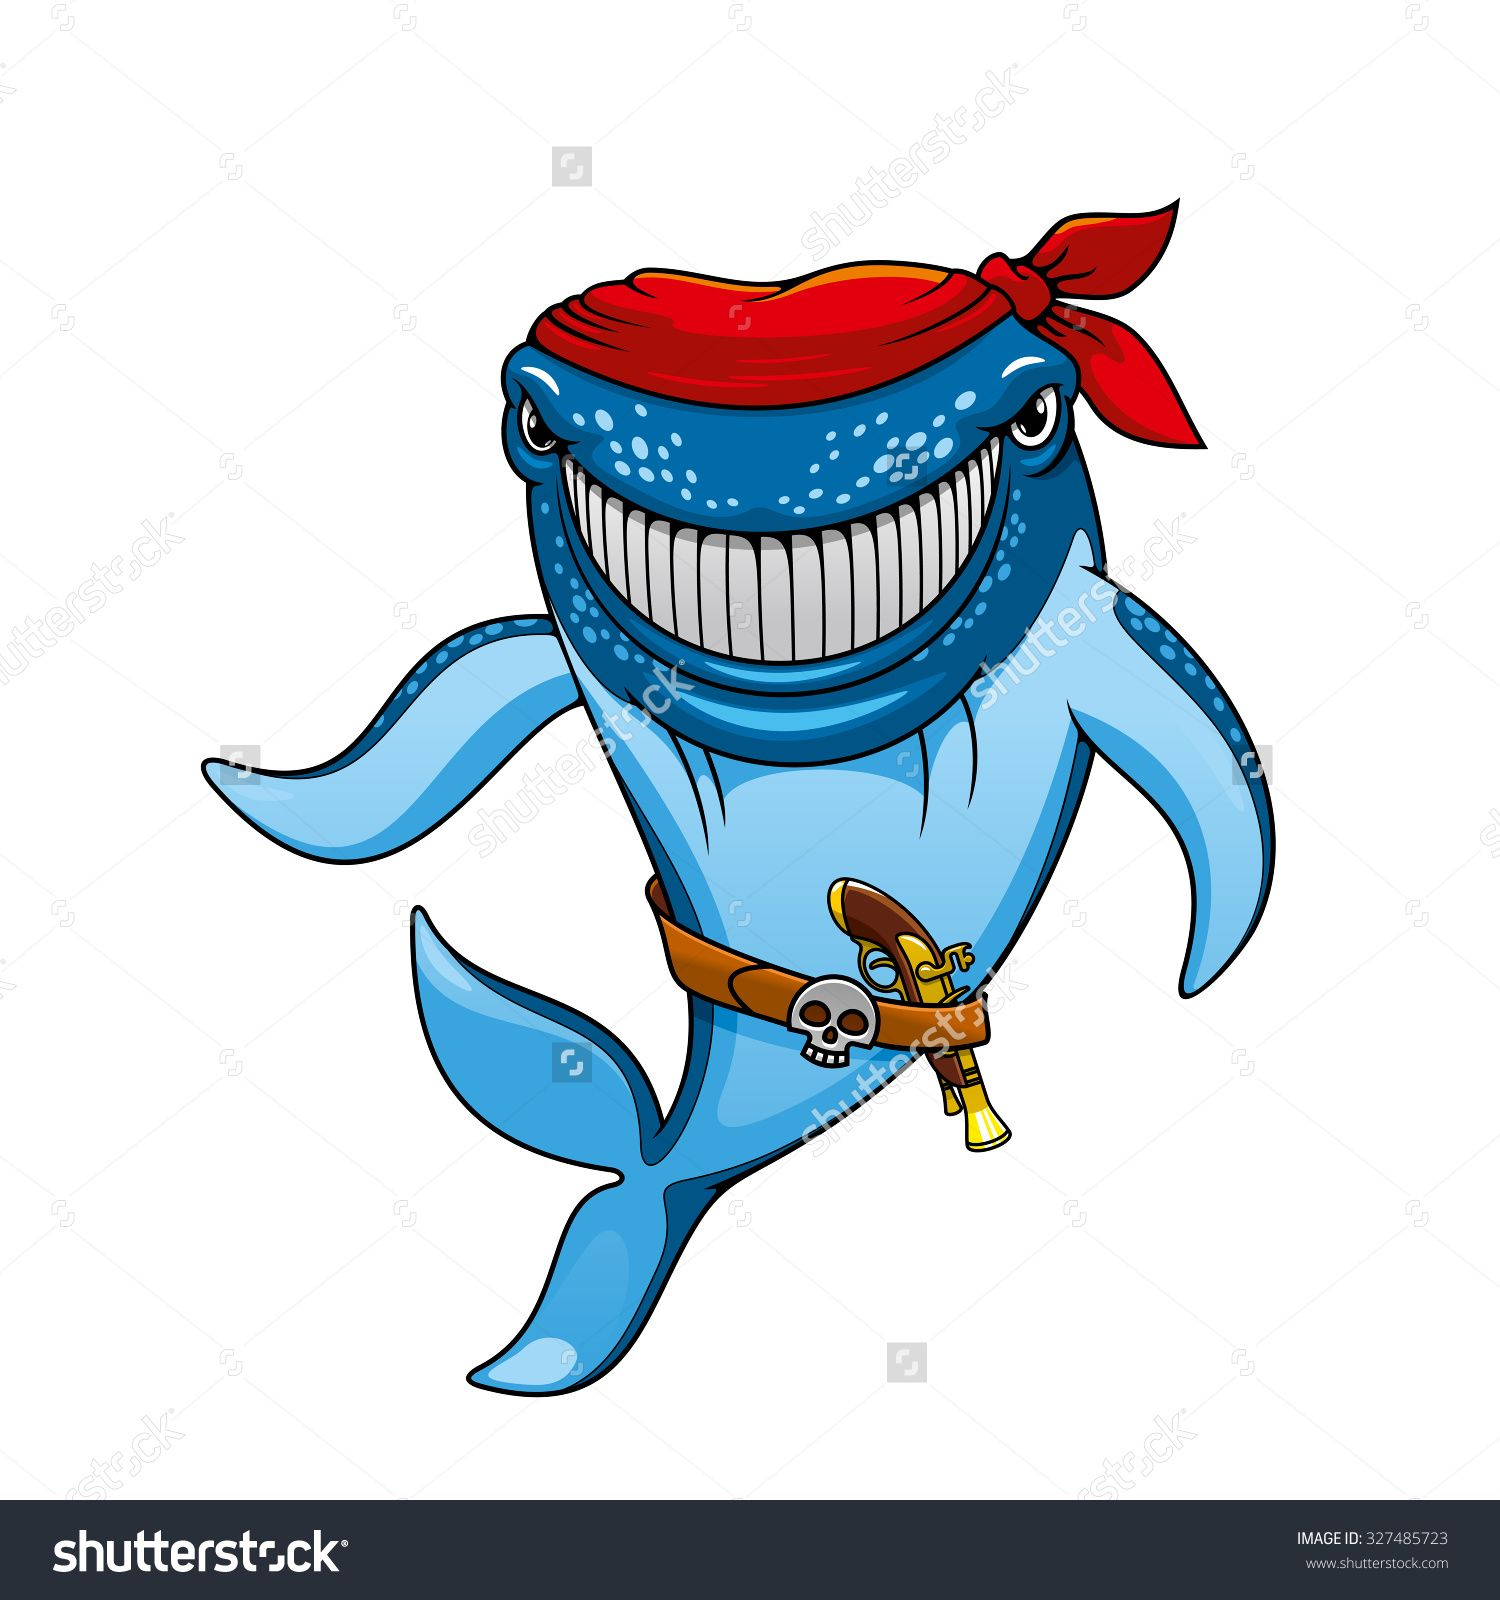 smiling blue whale pirate cartoon character wearing in red